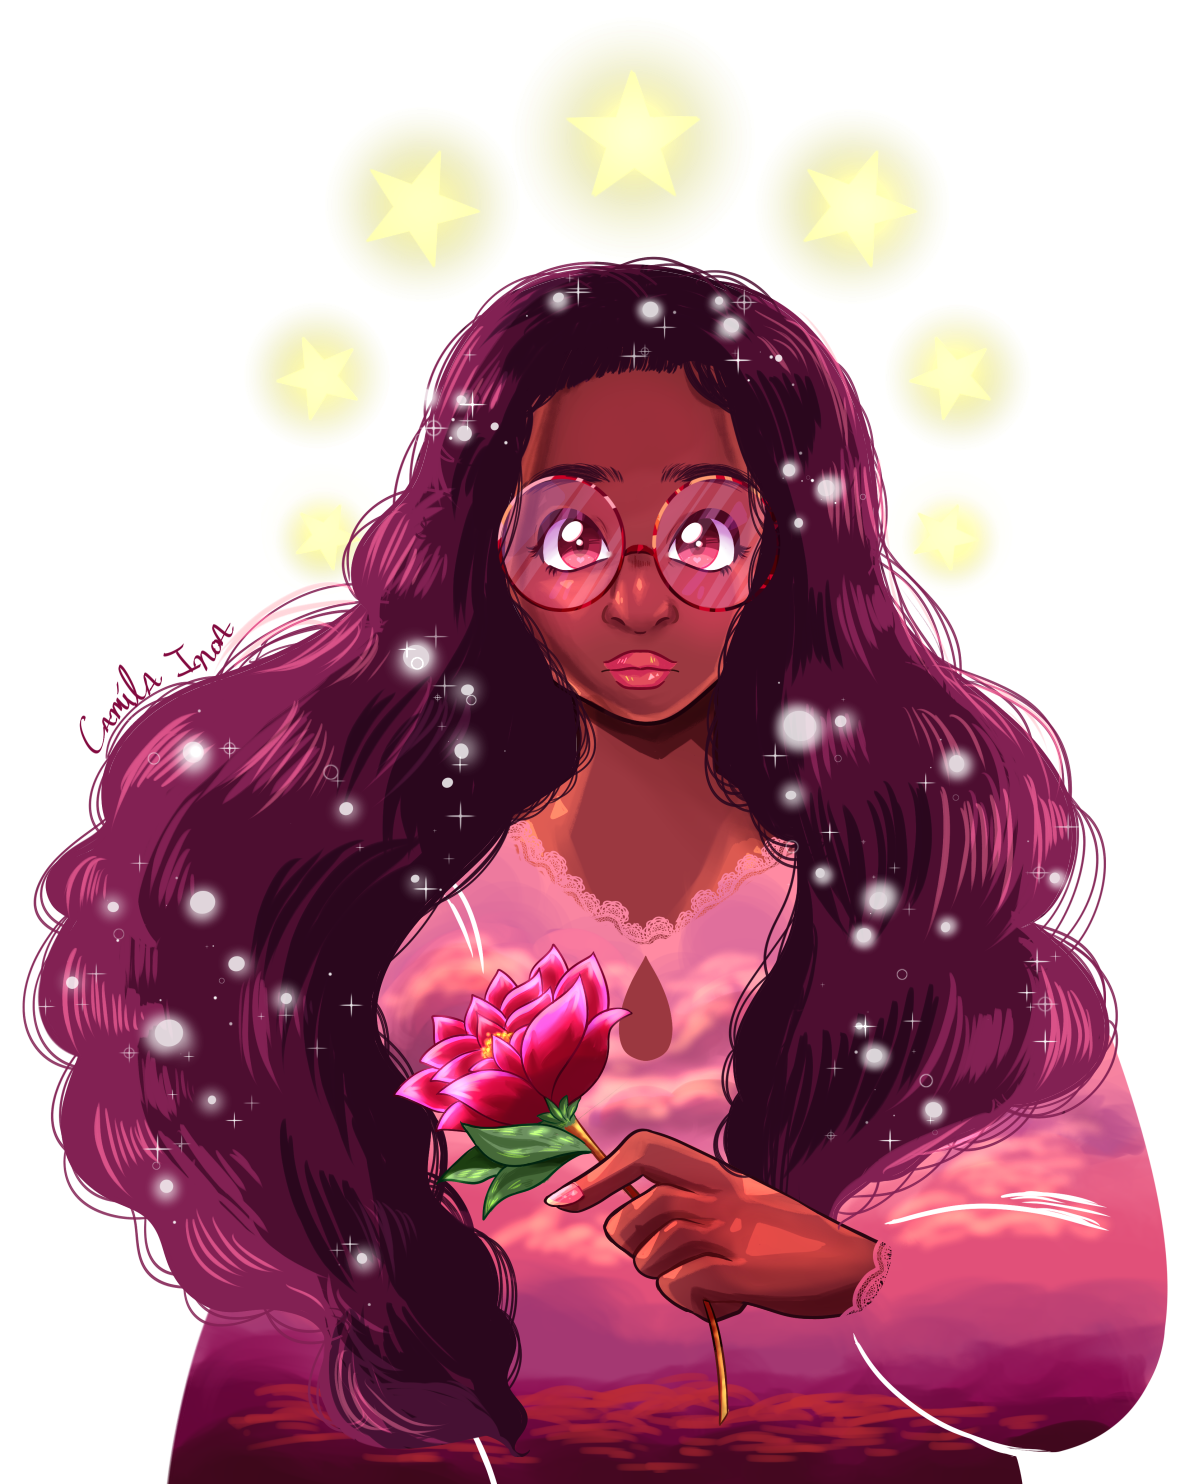 A transparent Connie + doodles of her w/ roses in her hair AU from twitter. 🌹